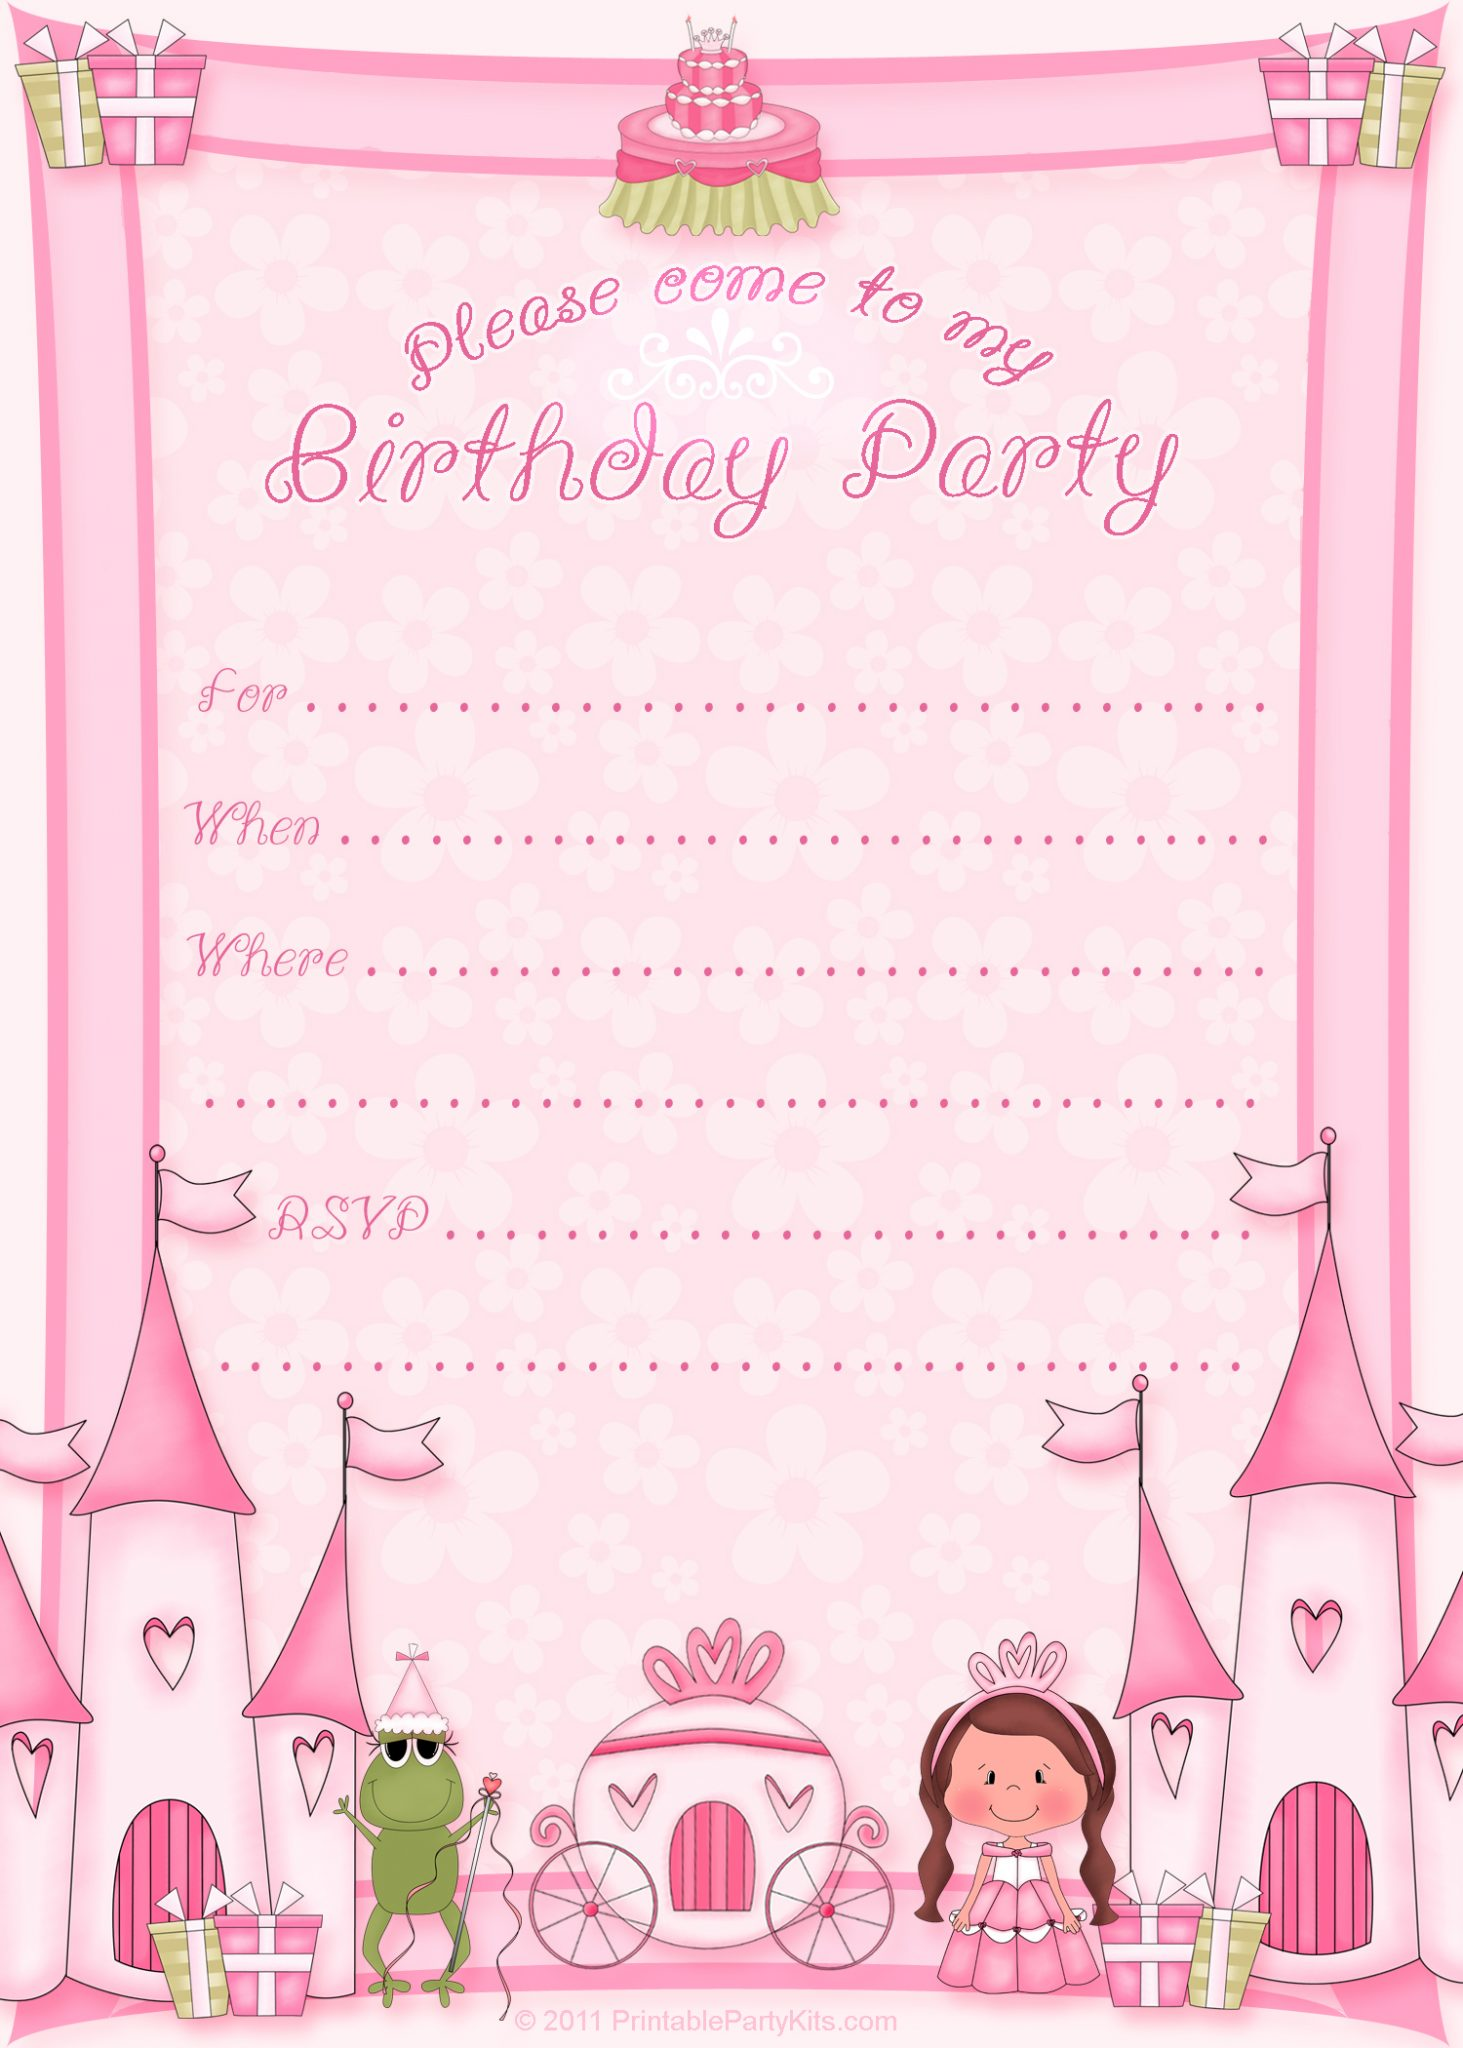 50 birthday invitation templates you will love these the template in its original size is available here birthday invitation